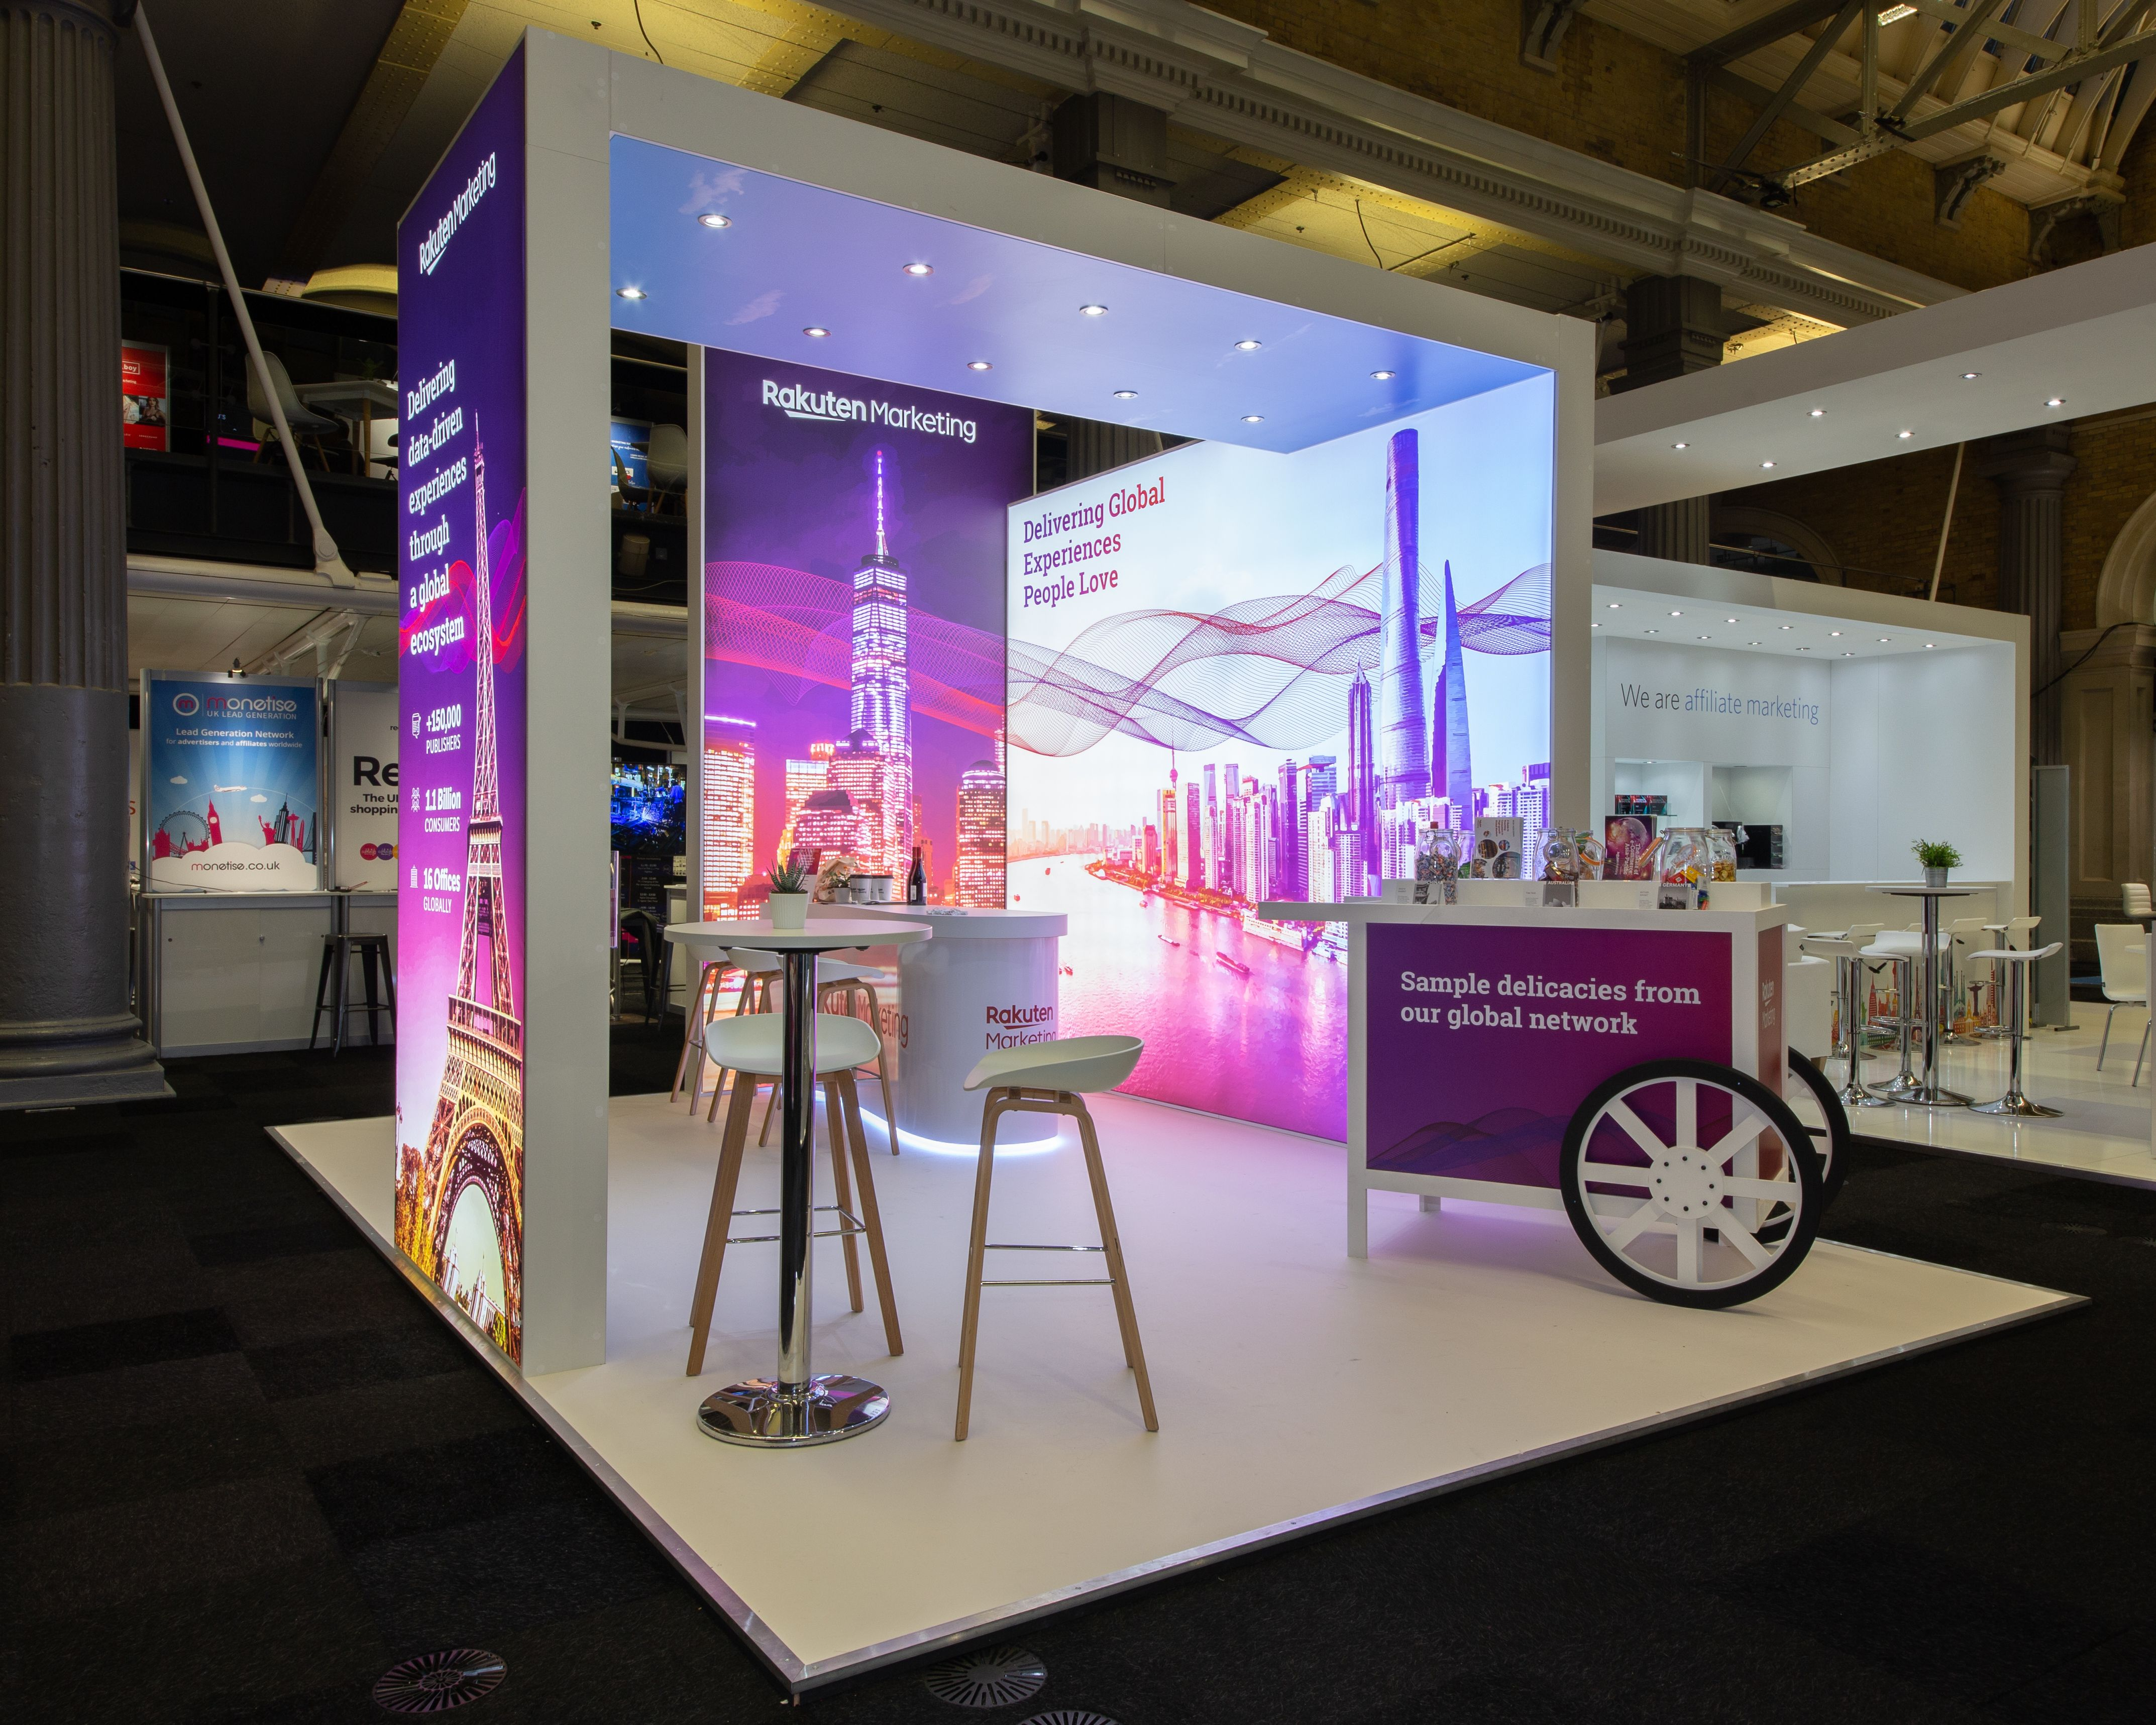 Marketing Exhibition Stand Years : How about this for a custom built exhibition stand & display? this